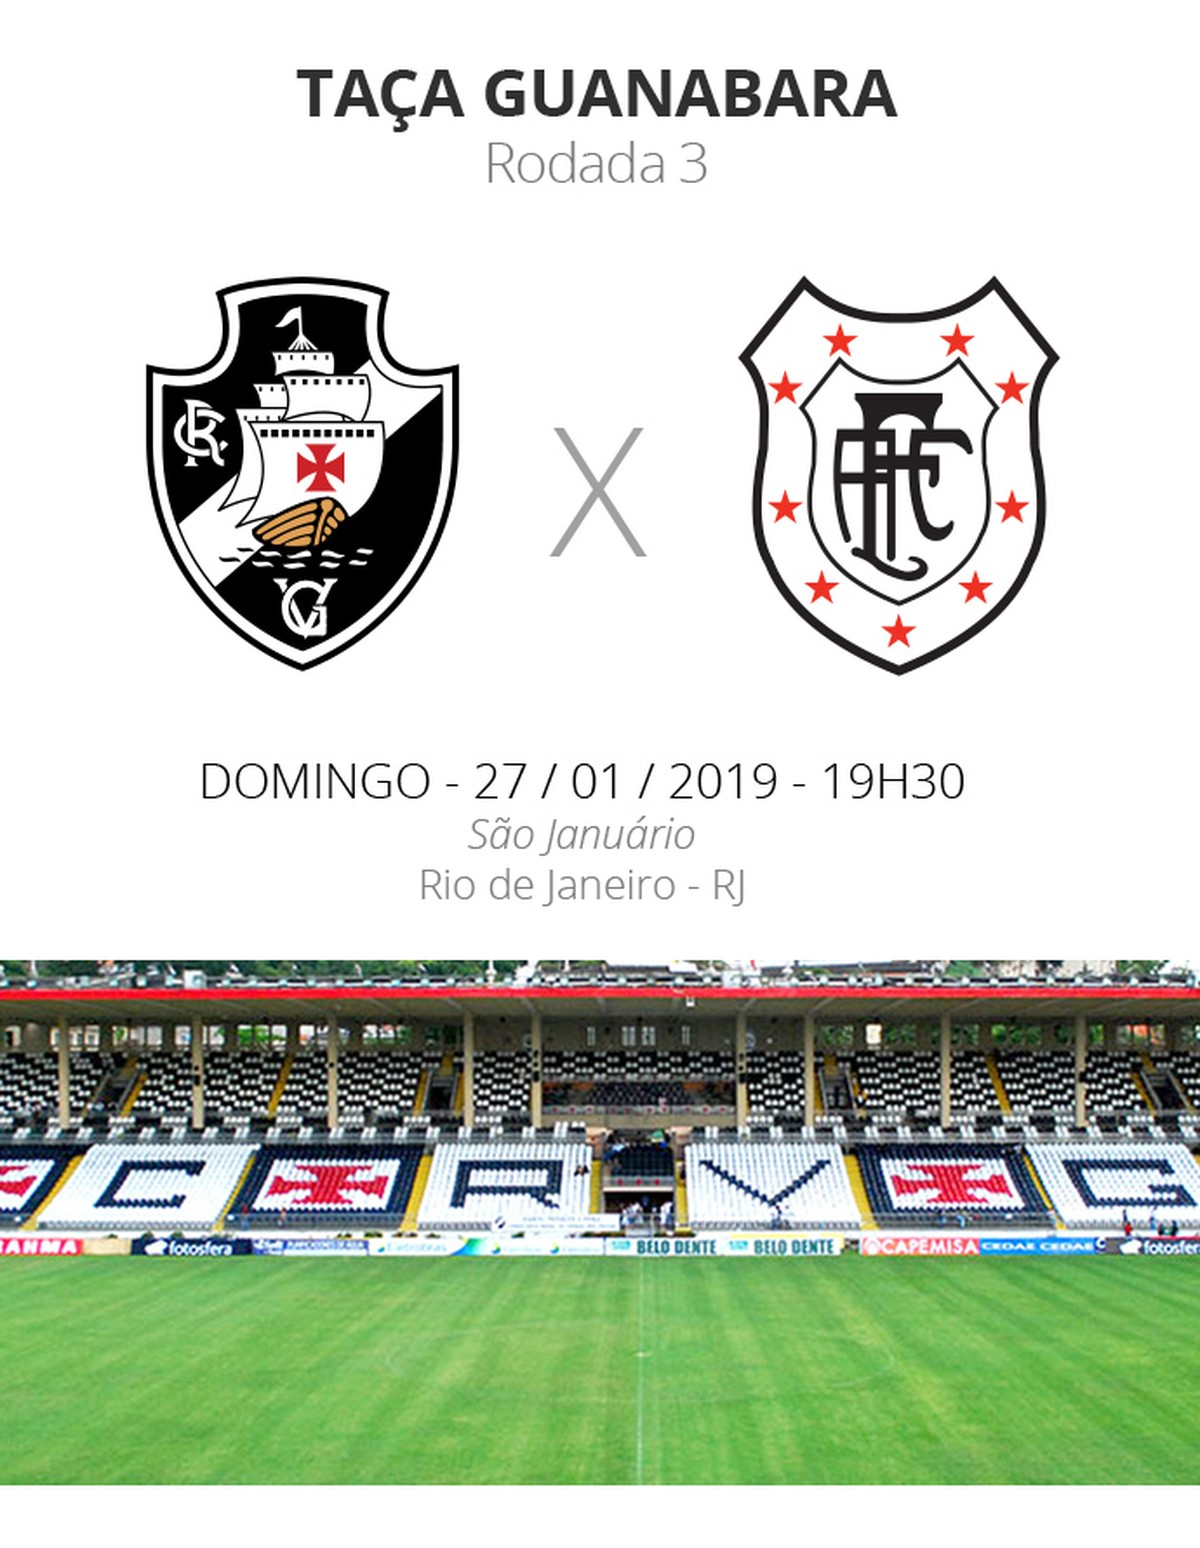 29f92c1e7a Vasco x Americano  everything you need to know about the duel of the third  round of the Guanabara Cup Carioca Championship